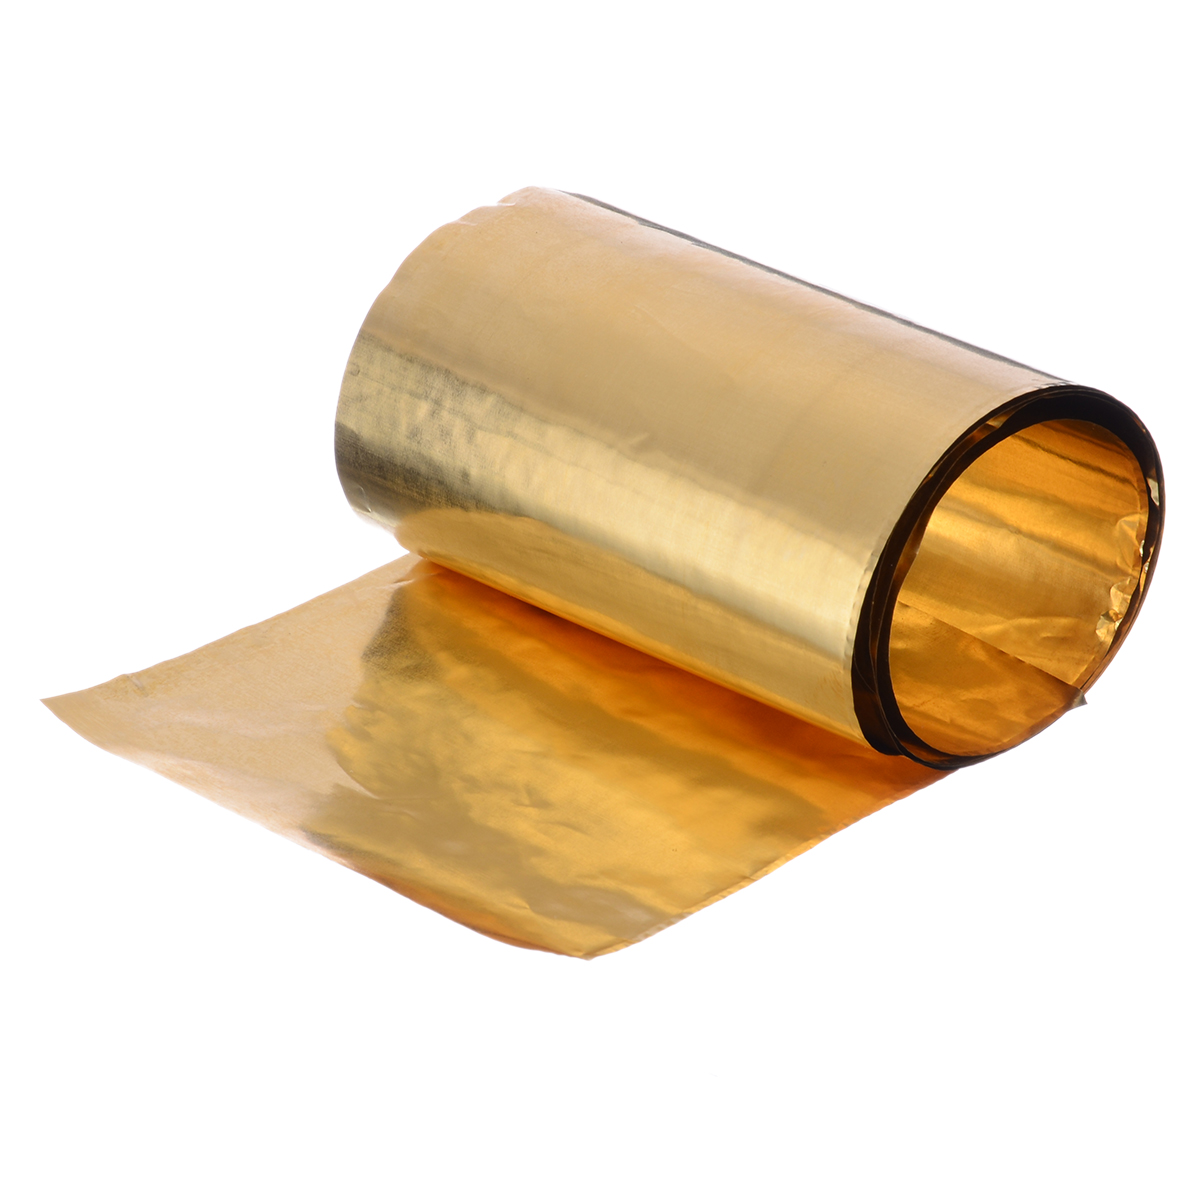 1pc Brass Metal Thin Sheet Foil Belt Metalworking Supplies 0.02x100x1000mm With Corrosion Resistance